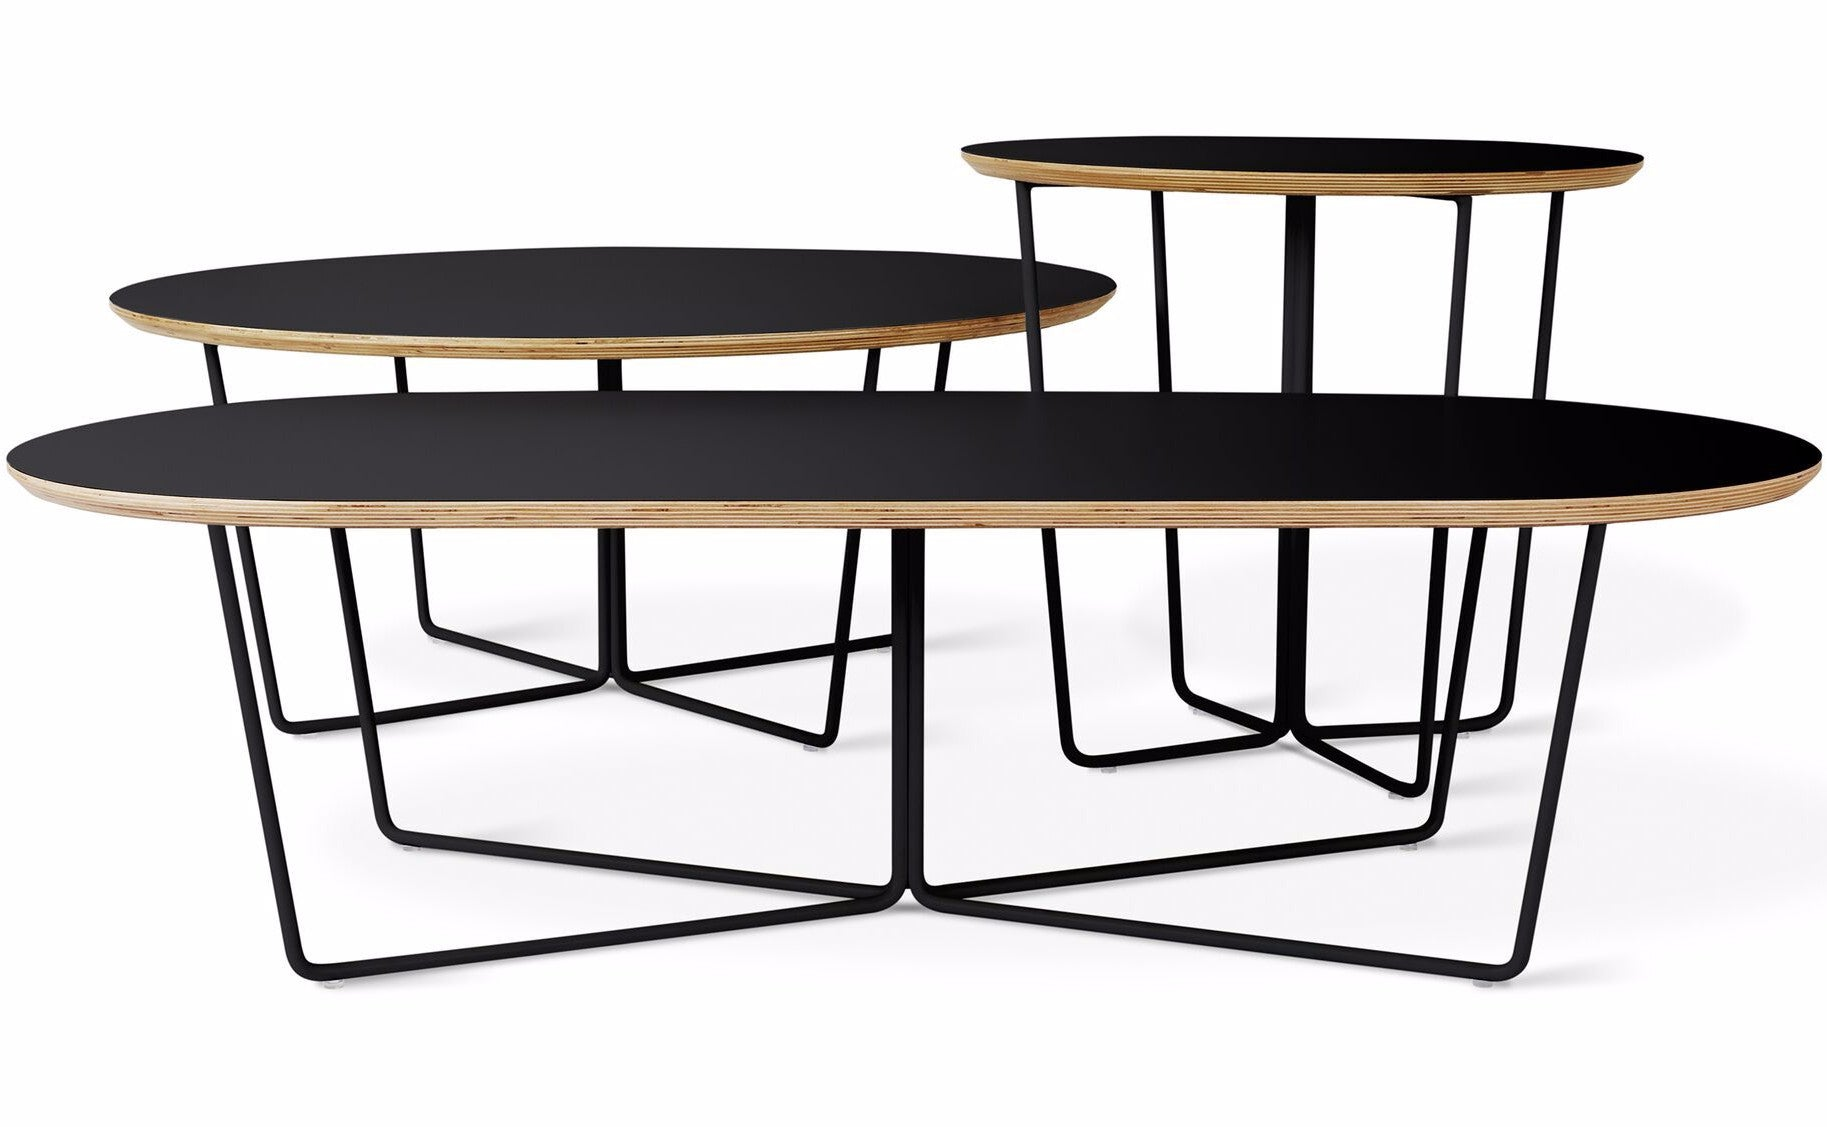 Array Oval Coffee Table In Various Colors Design By Gus